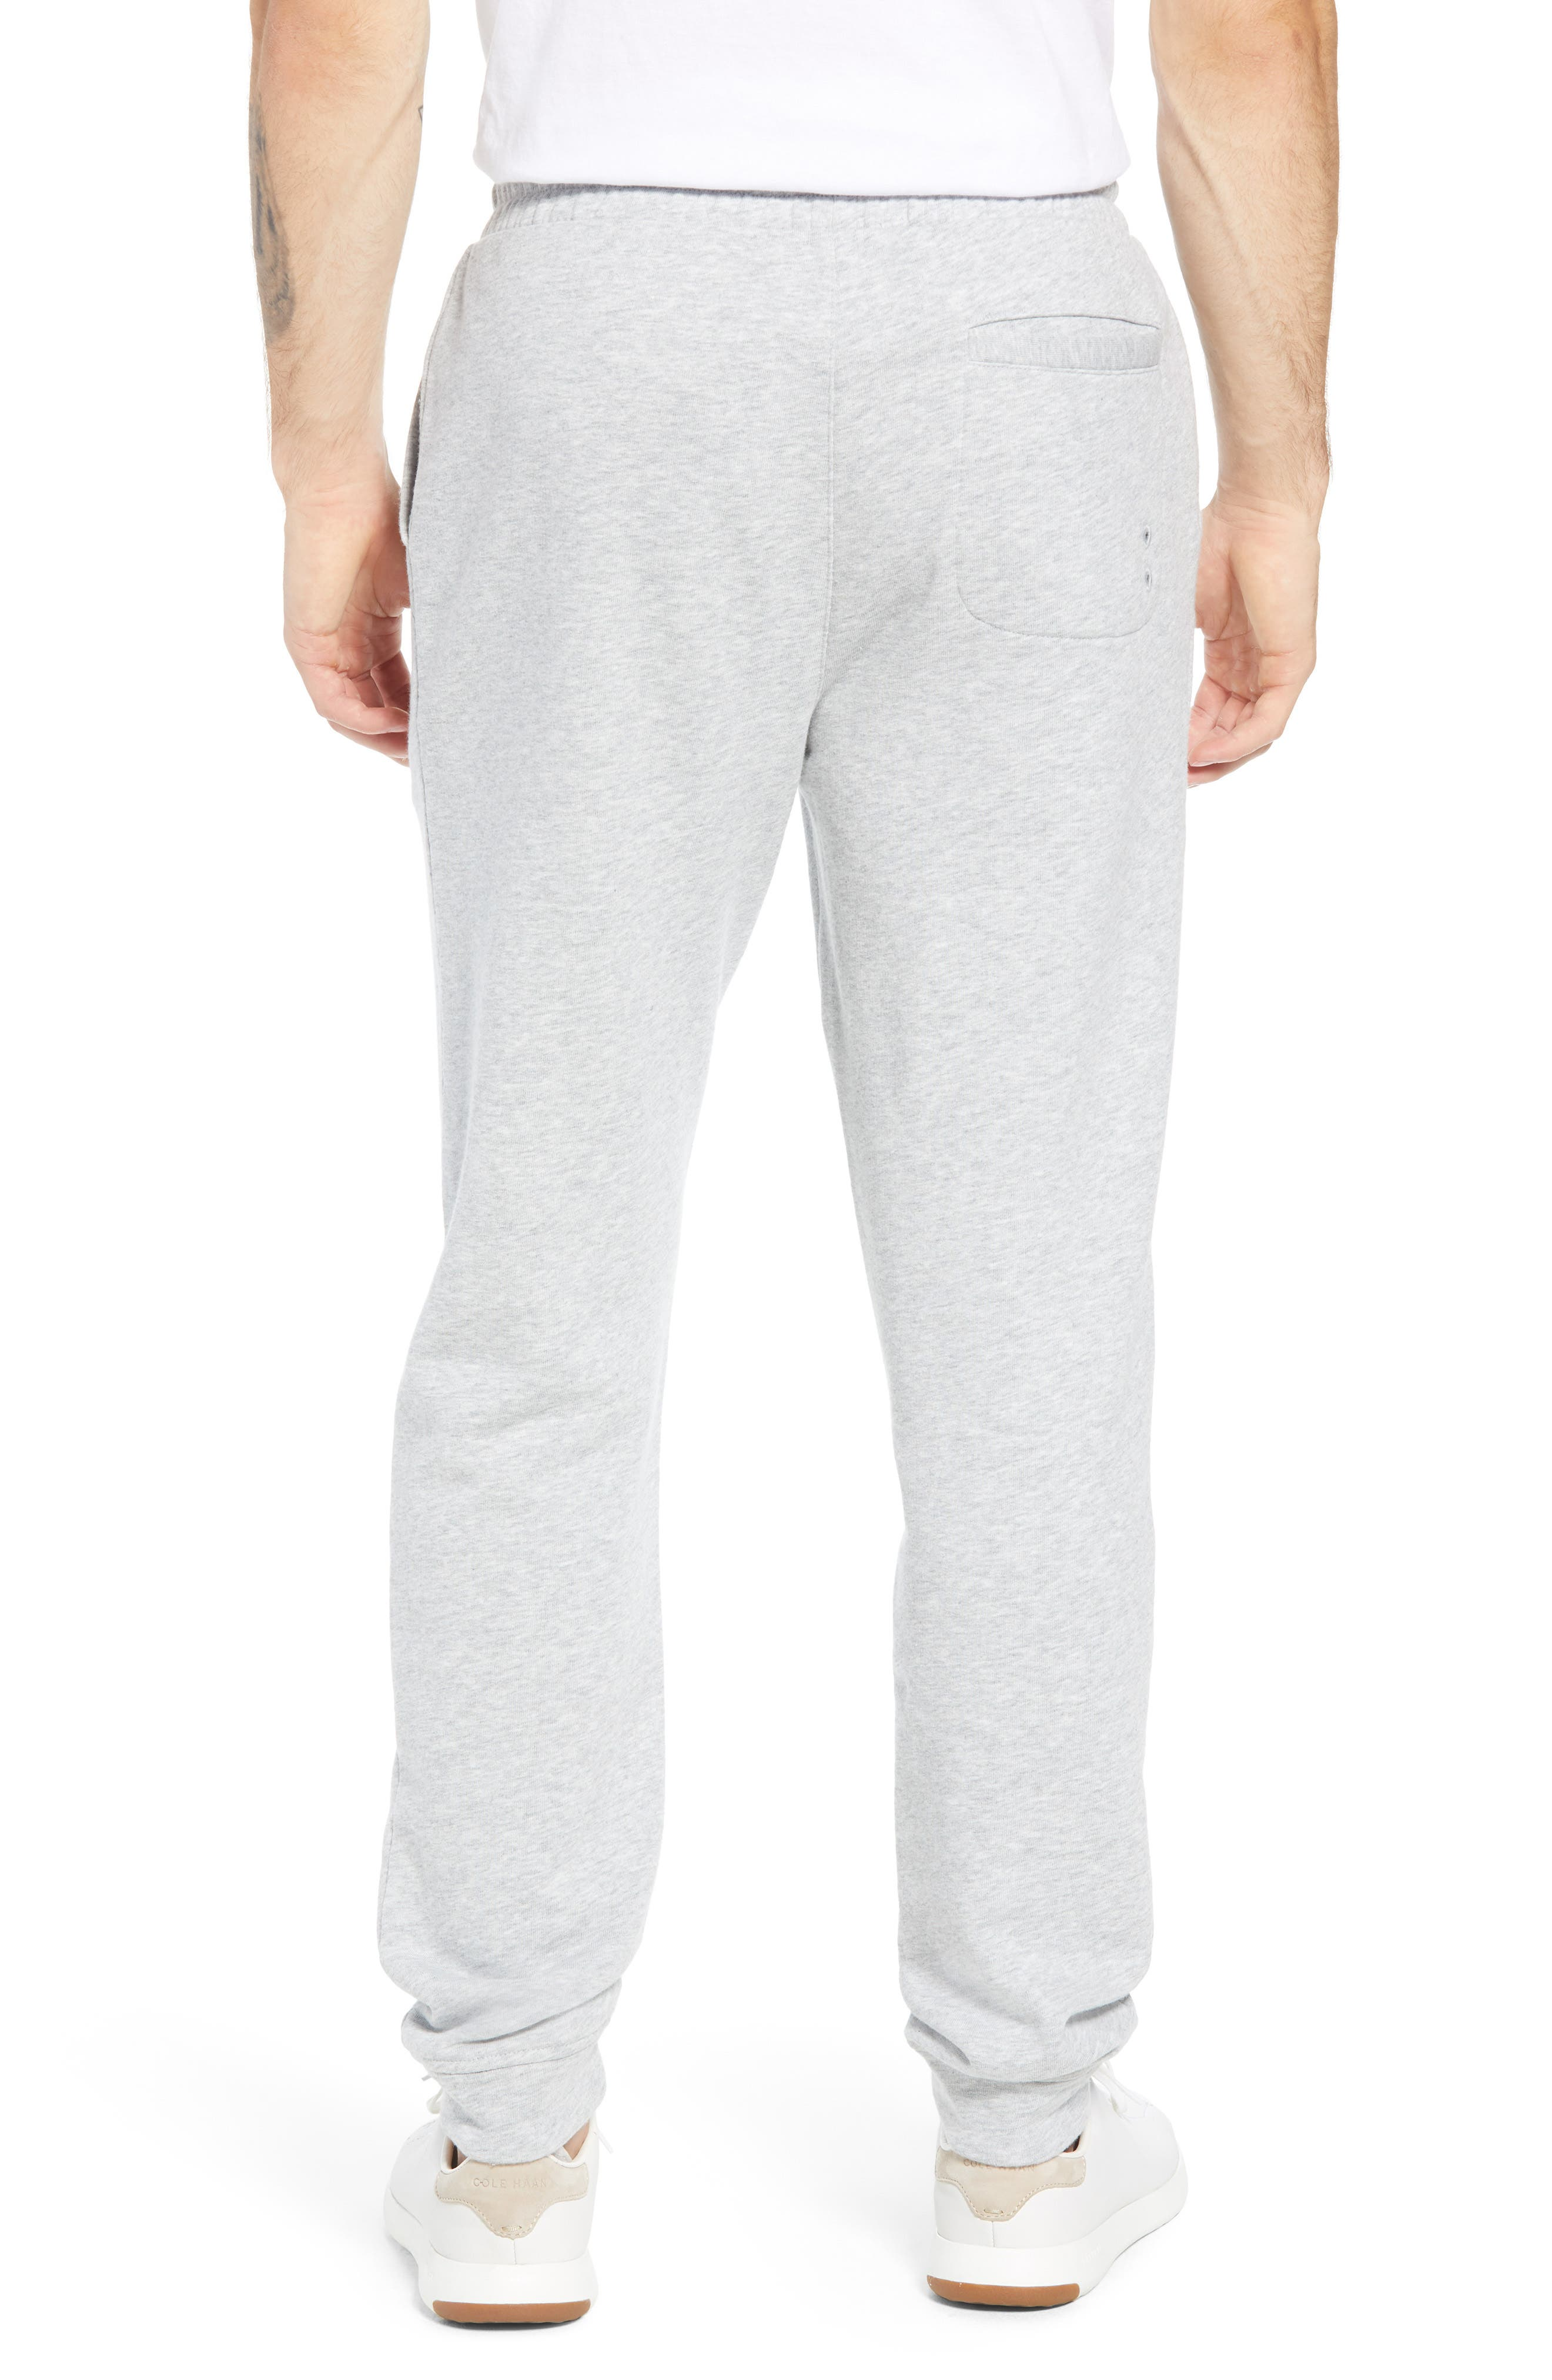 Heritage French Terry Knit Jogger Pants,                             Alternate thumbnail 2, color,                             GRAY HEATHER